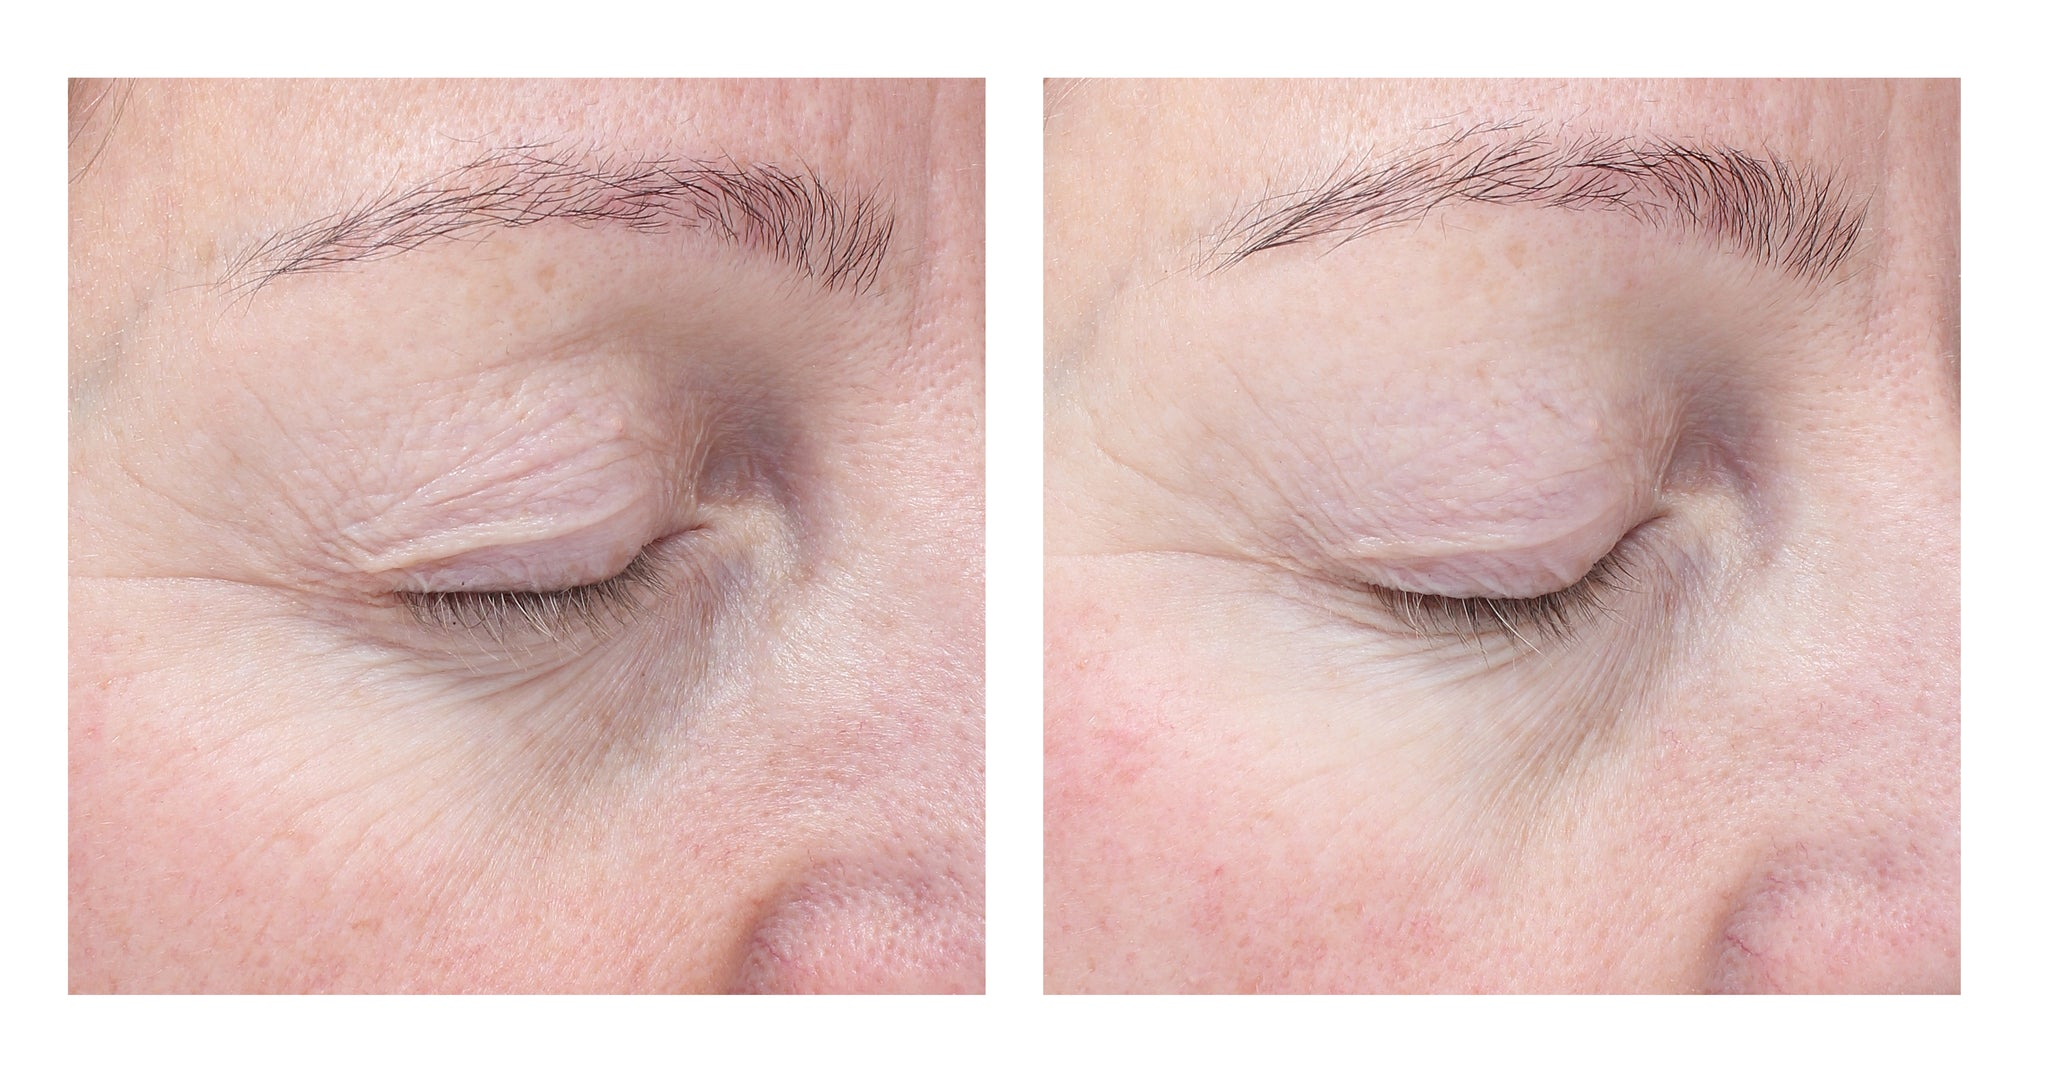 Before and after shot of a person's eye with visibly fewer wrinkles after using BIOEFFECT anti-aging products